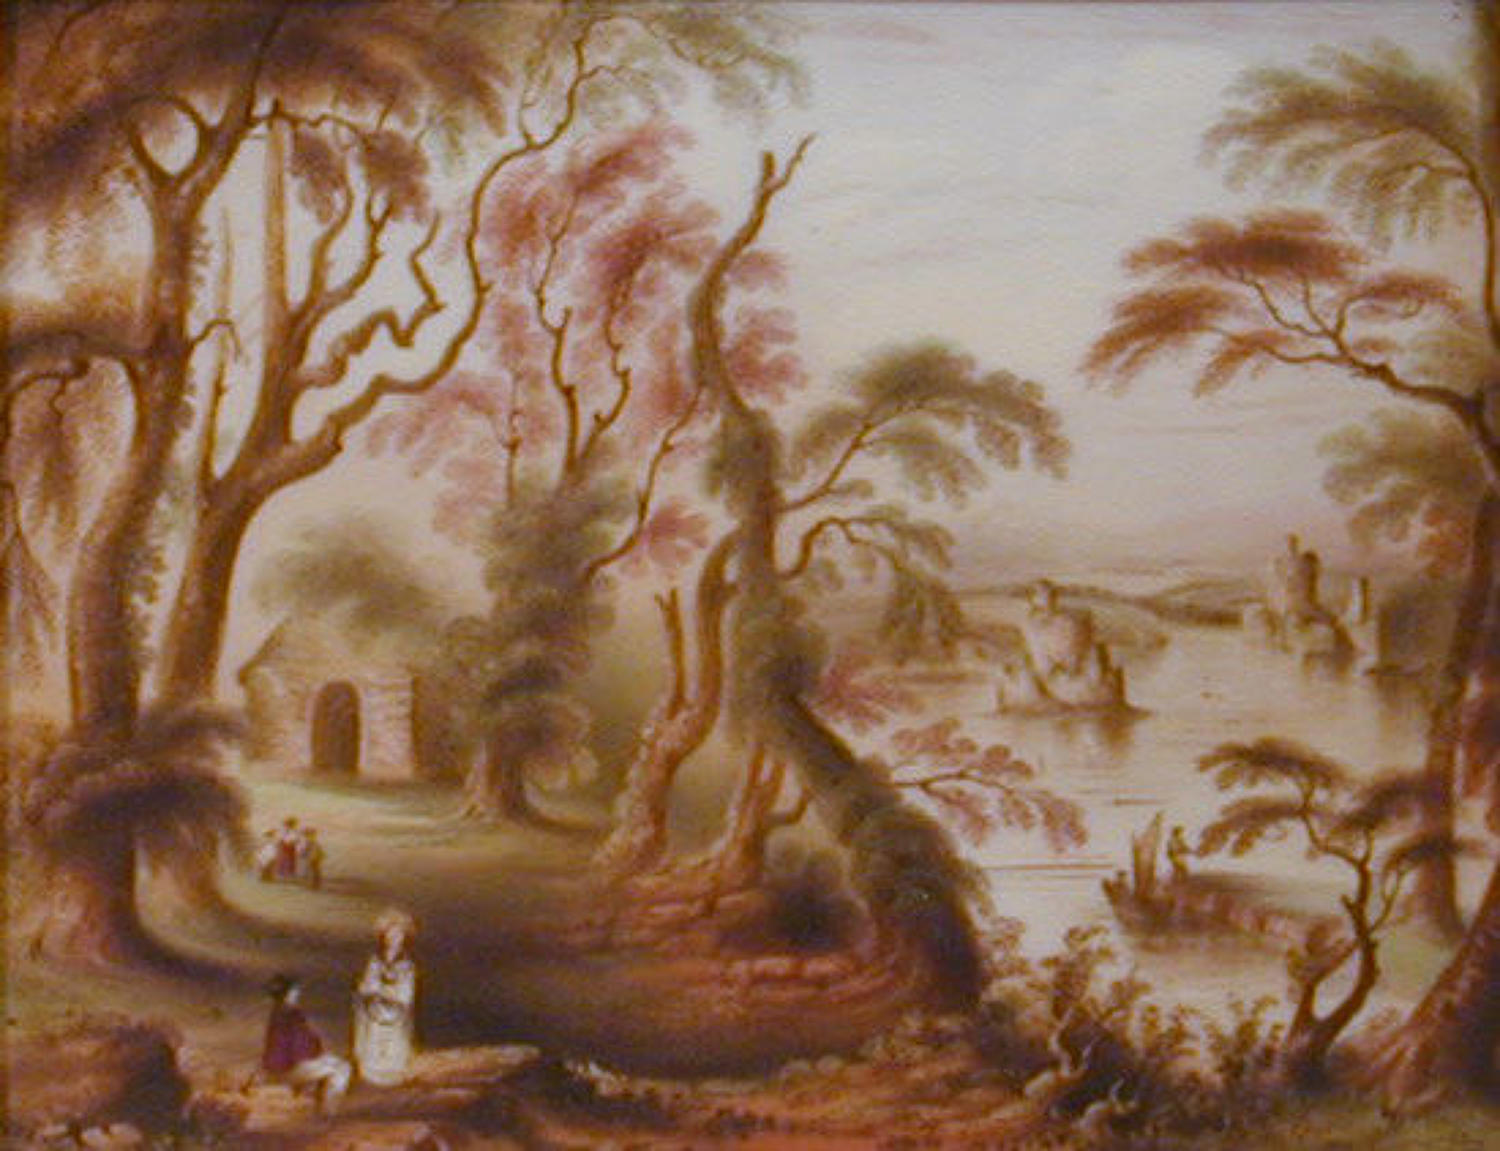 19th century landscape oil painting on porcelain tablet